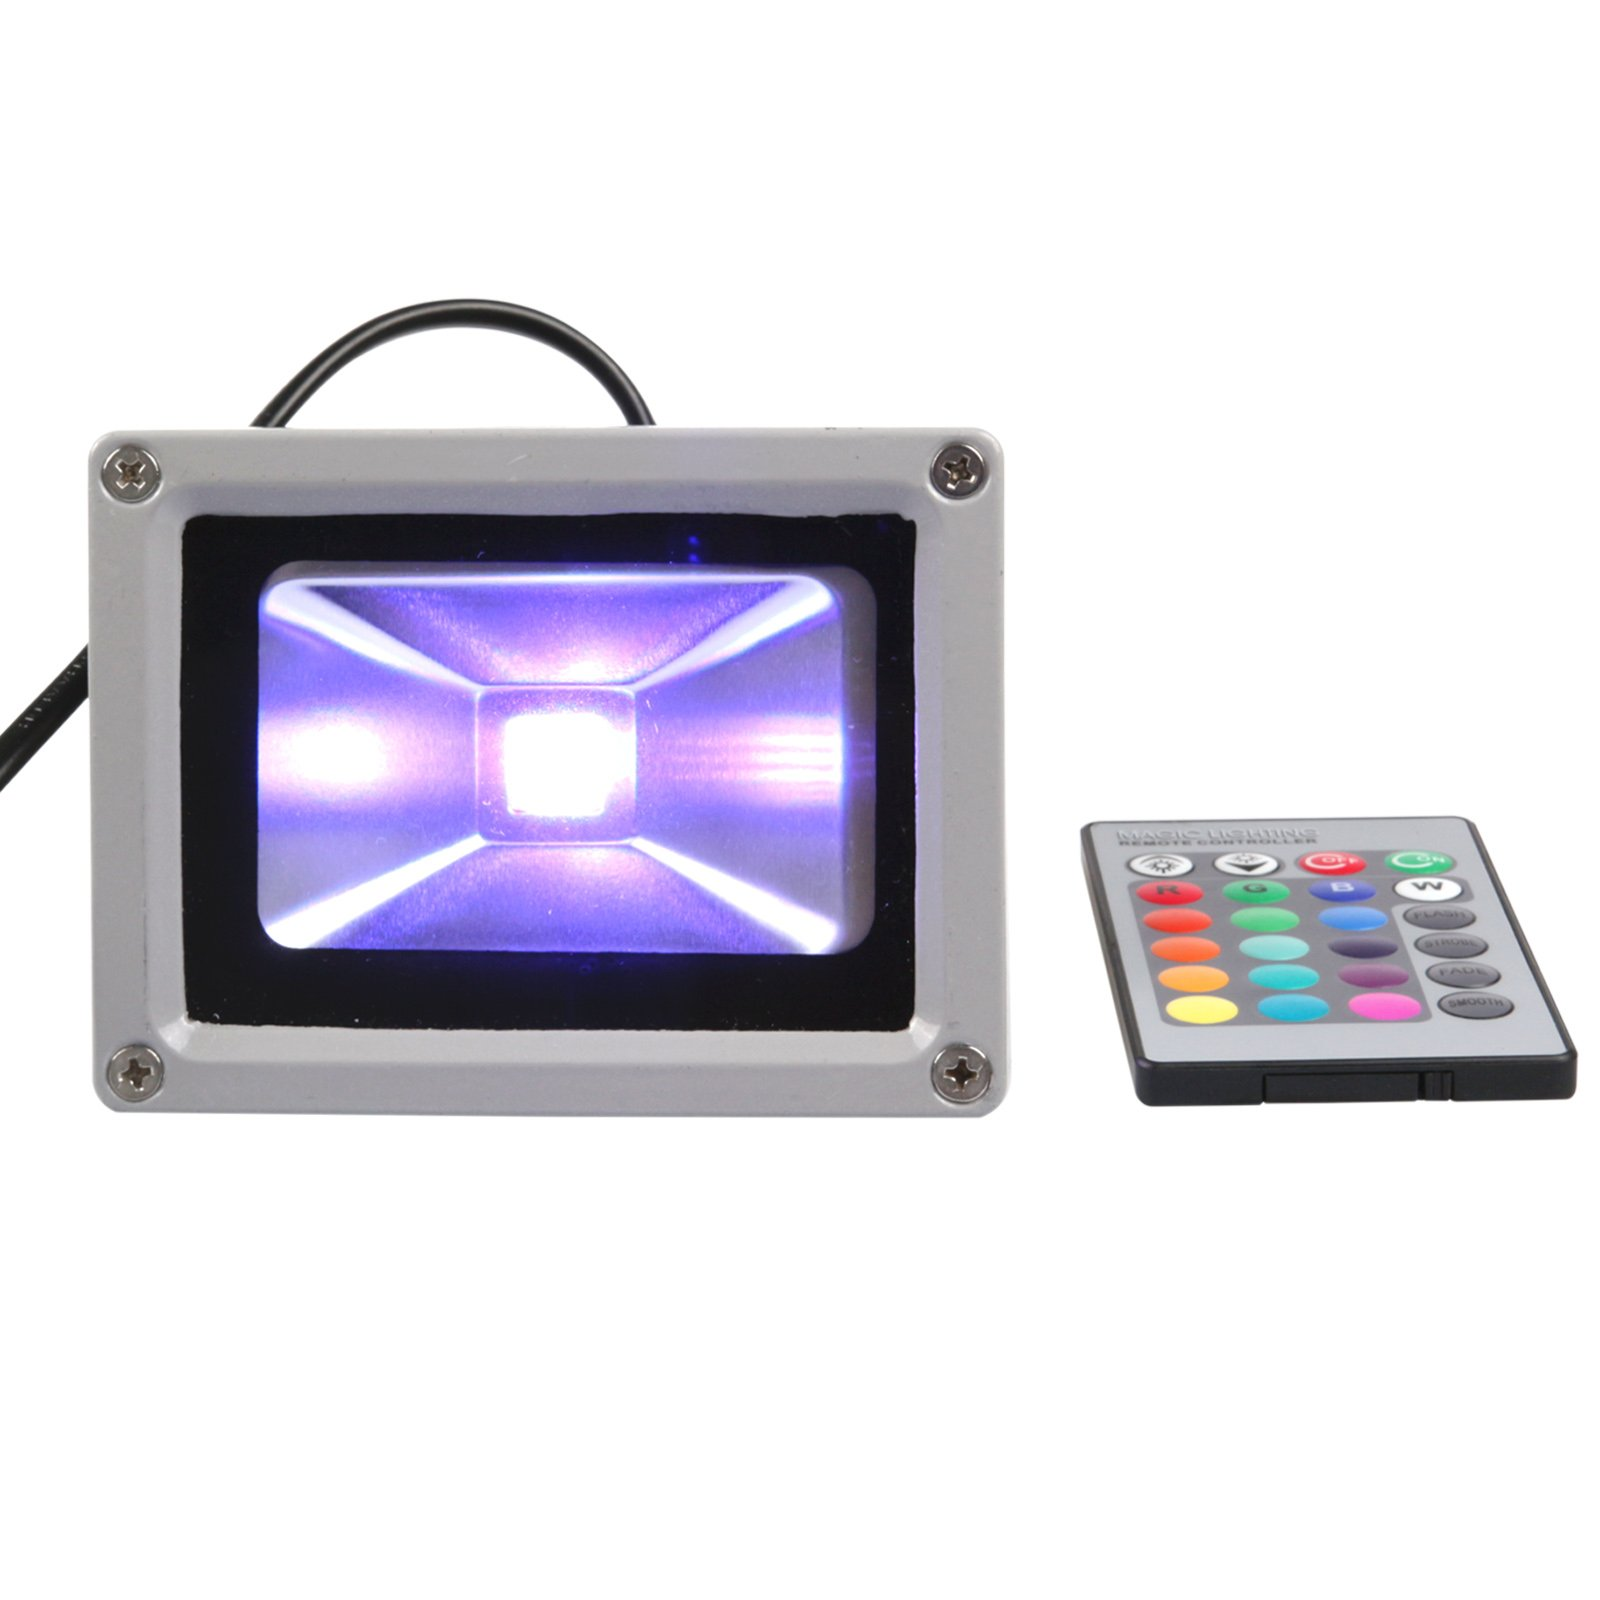 Lemonbest® 10w High Power RGB Waterproof LED Flood Light Project Light Wall Wash Light (16 Different Color Tones) with Remote Control